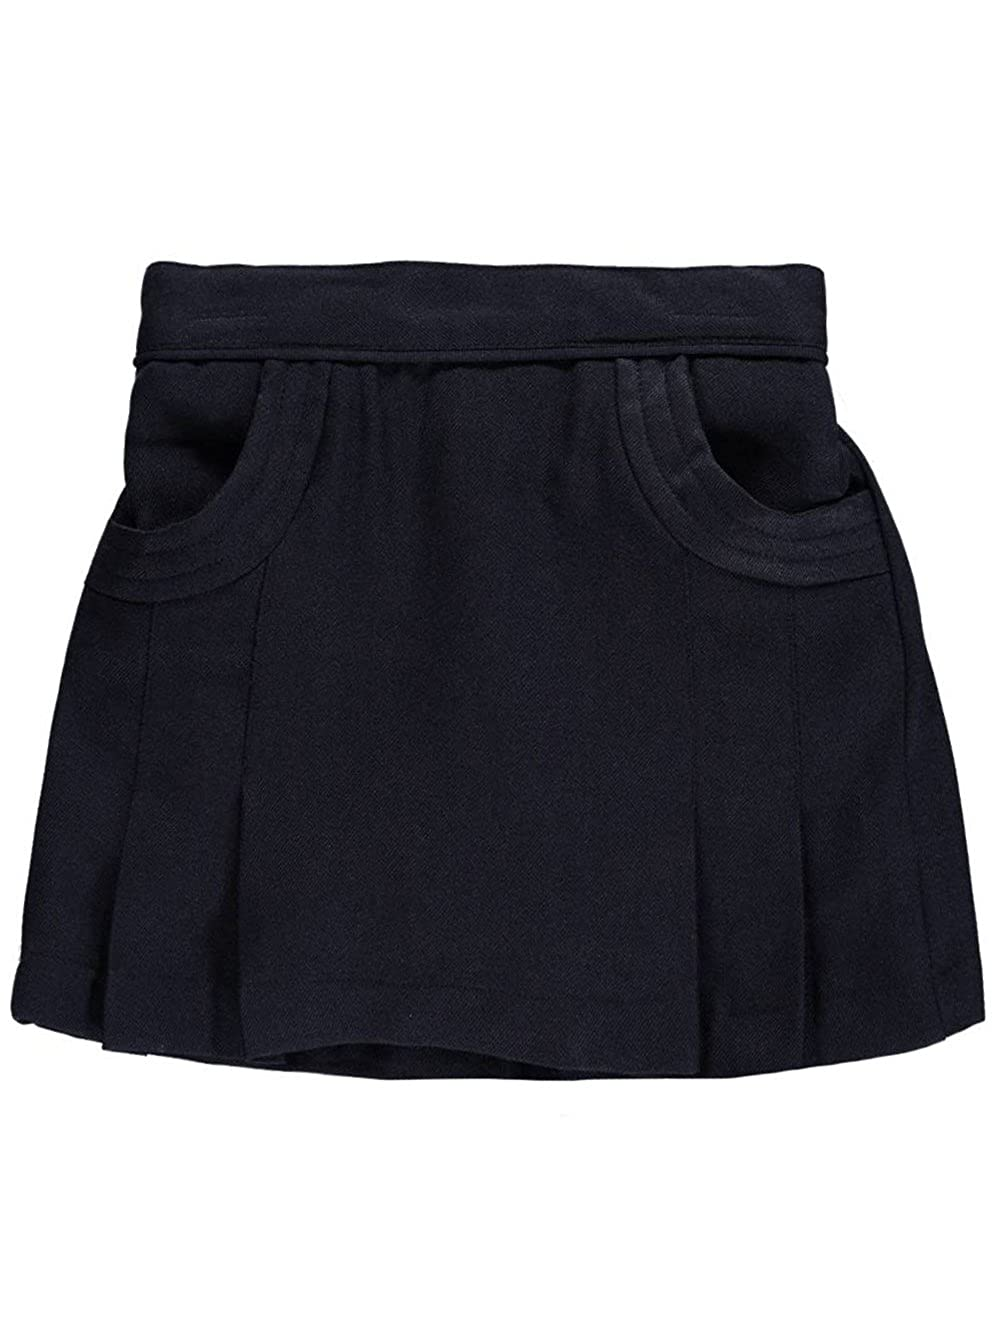 Nautica Little Girls' Stitched Pocket Scooter Skirt - navy, 5